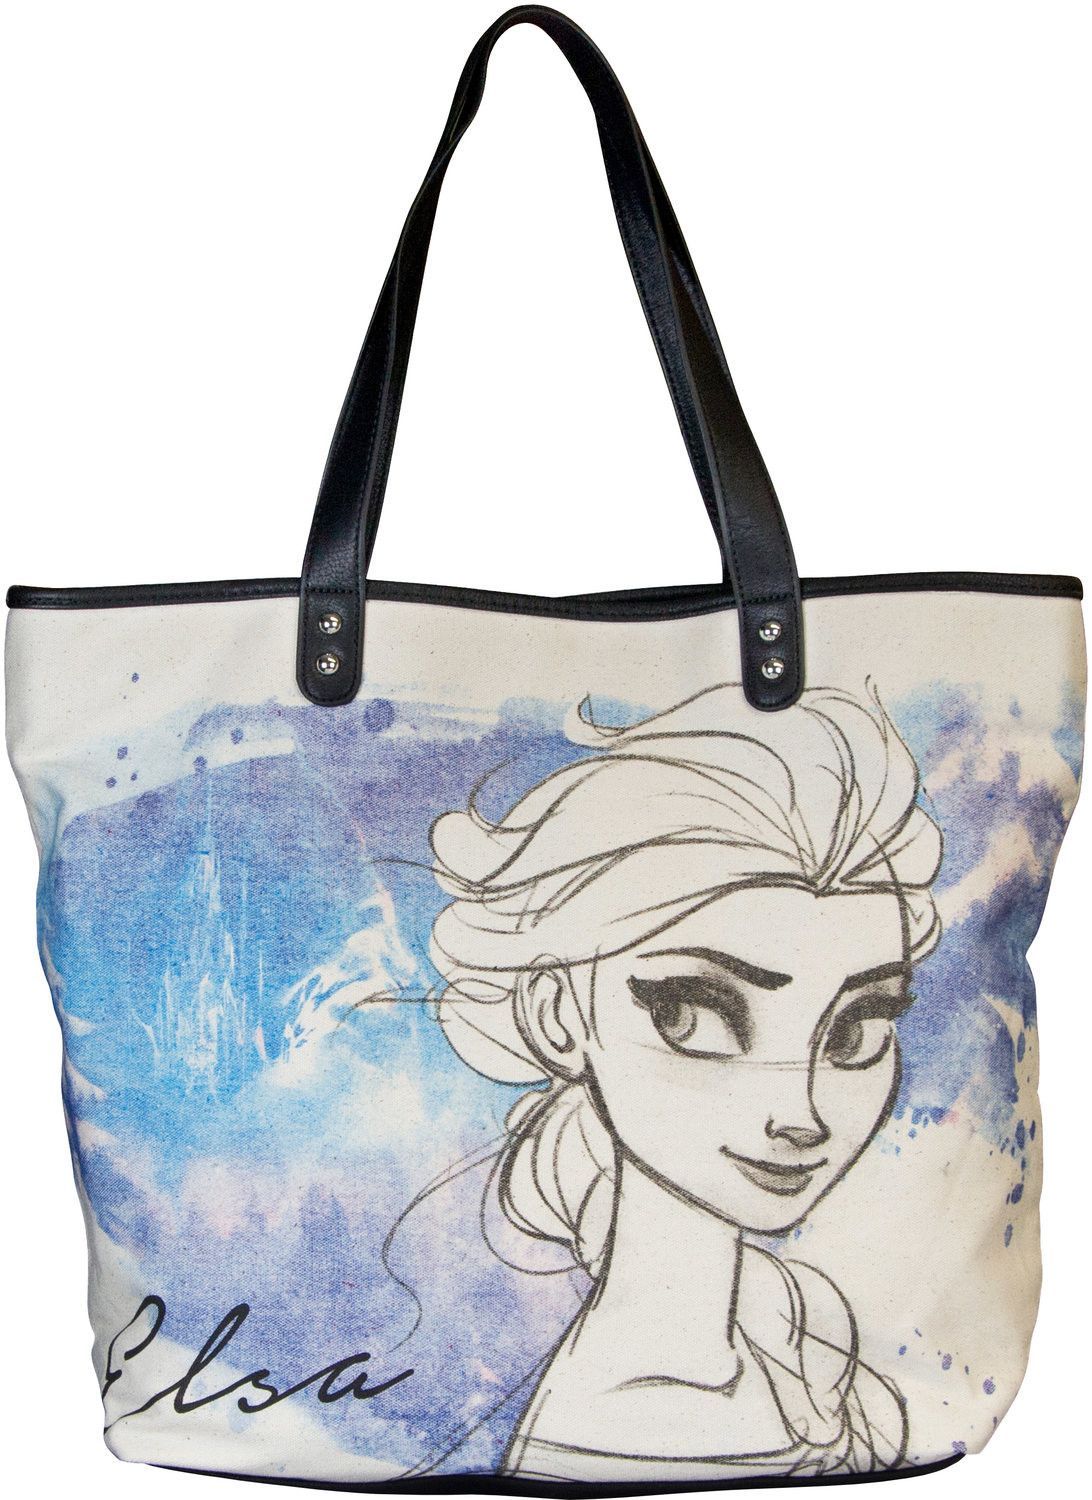 Frozen Elsa Tote Bag  Disney Frozen Hand Bag 7caf5bfcb187d